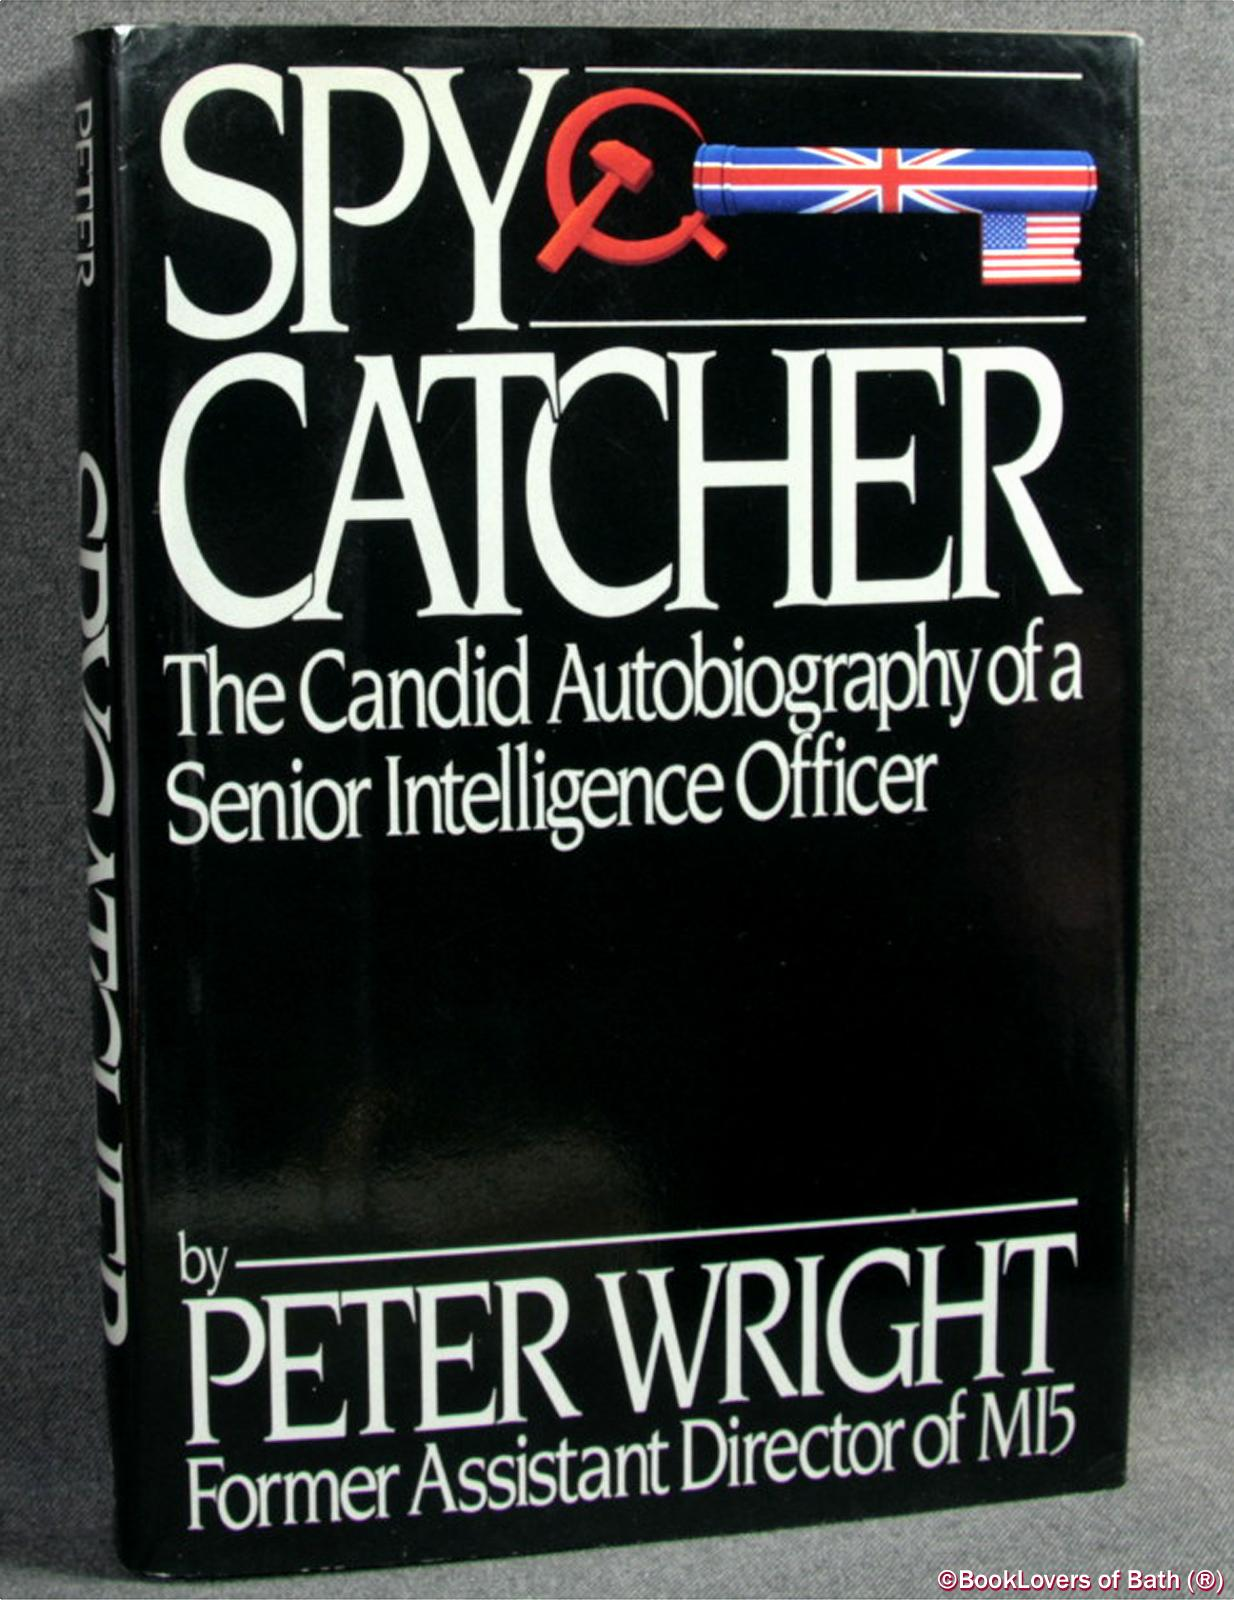 Spycatcher: The Candid Autobiography of a Senior Intelligence Officer - Peter Wright